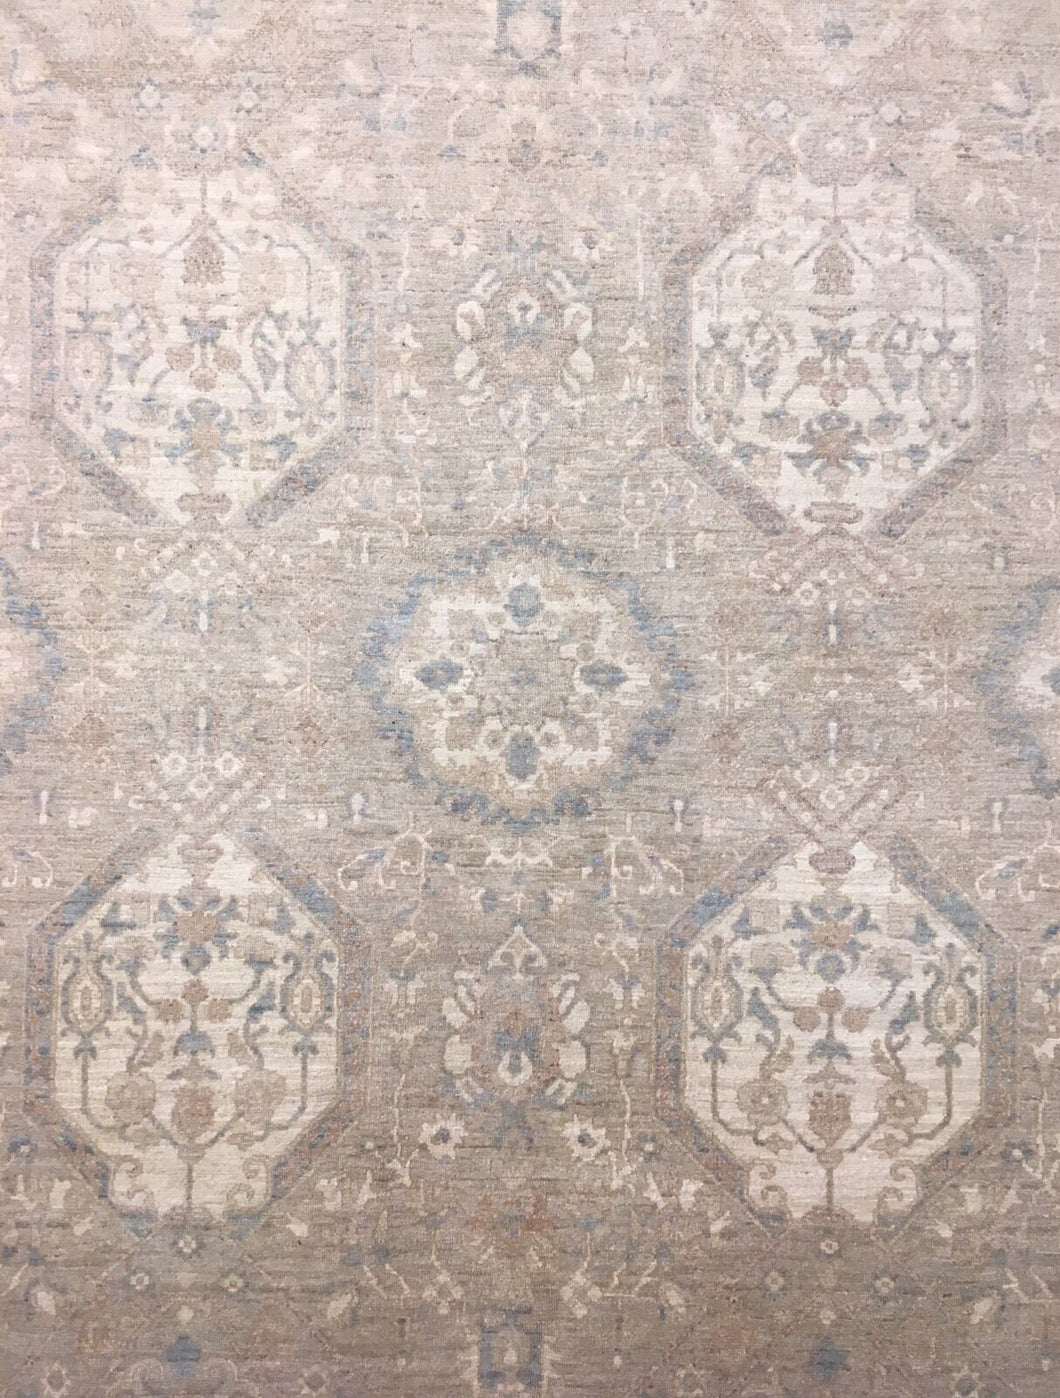 Beautiful Bamyan - Traditional Rug - Oriental Floral Carpet - 9' x 12'4